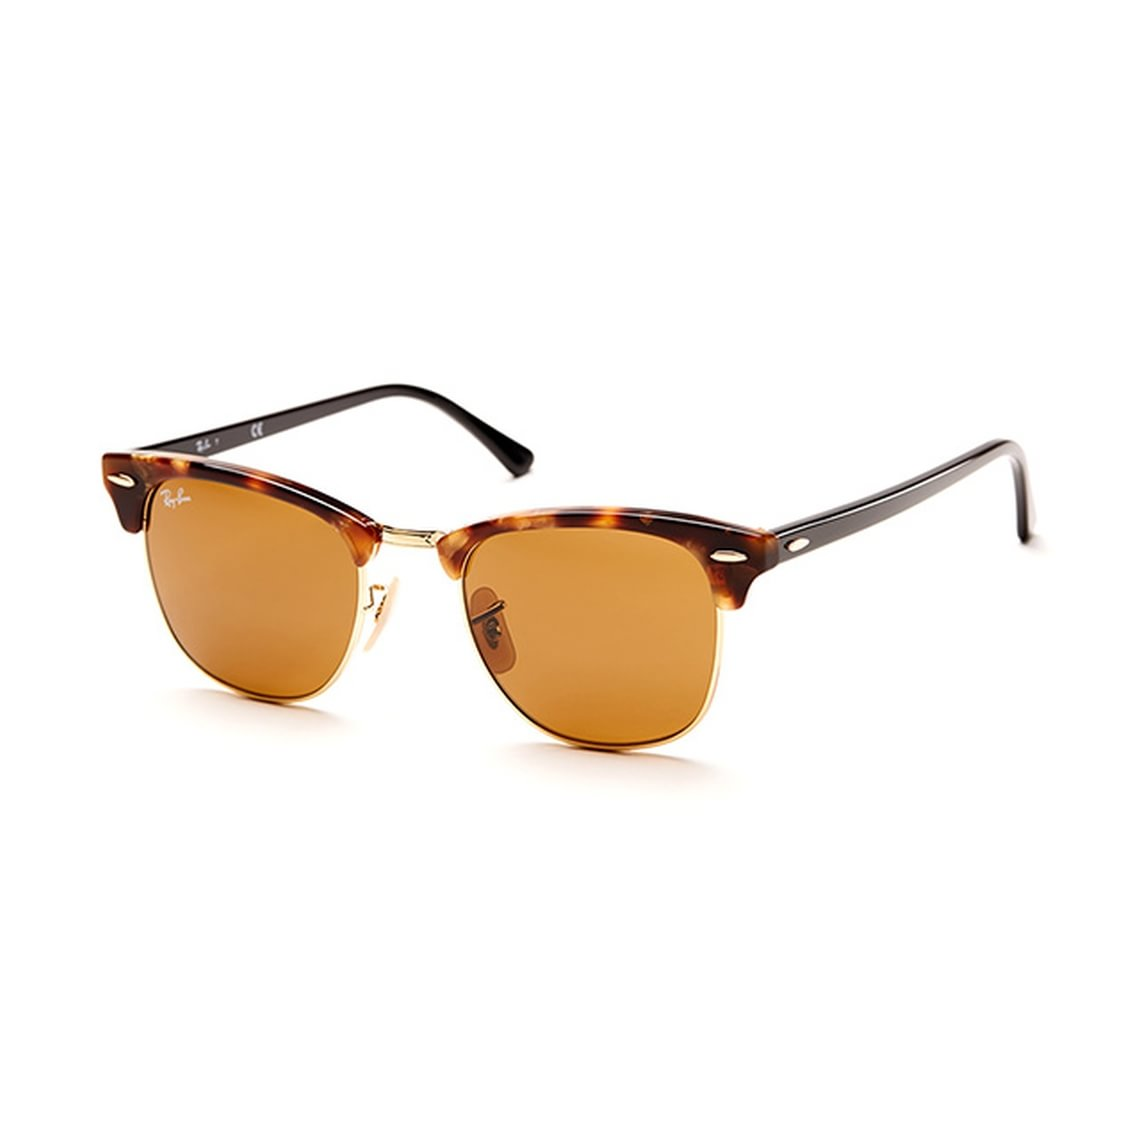 Ray-Ban Clubmaster RB3016 1160 5121